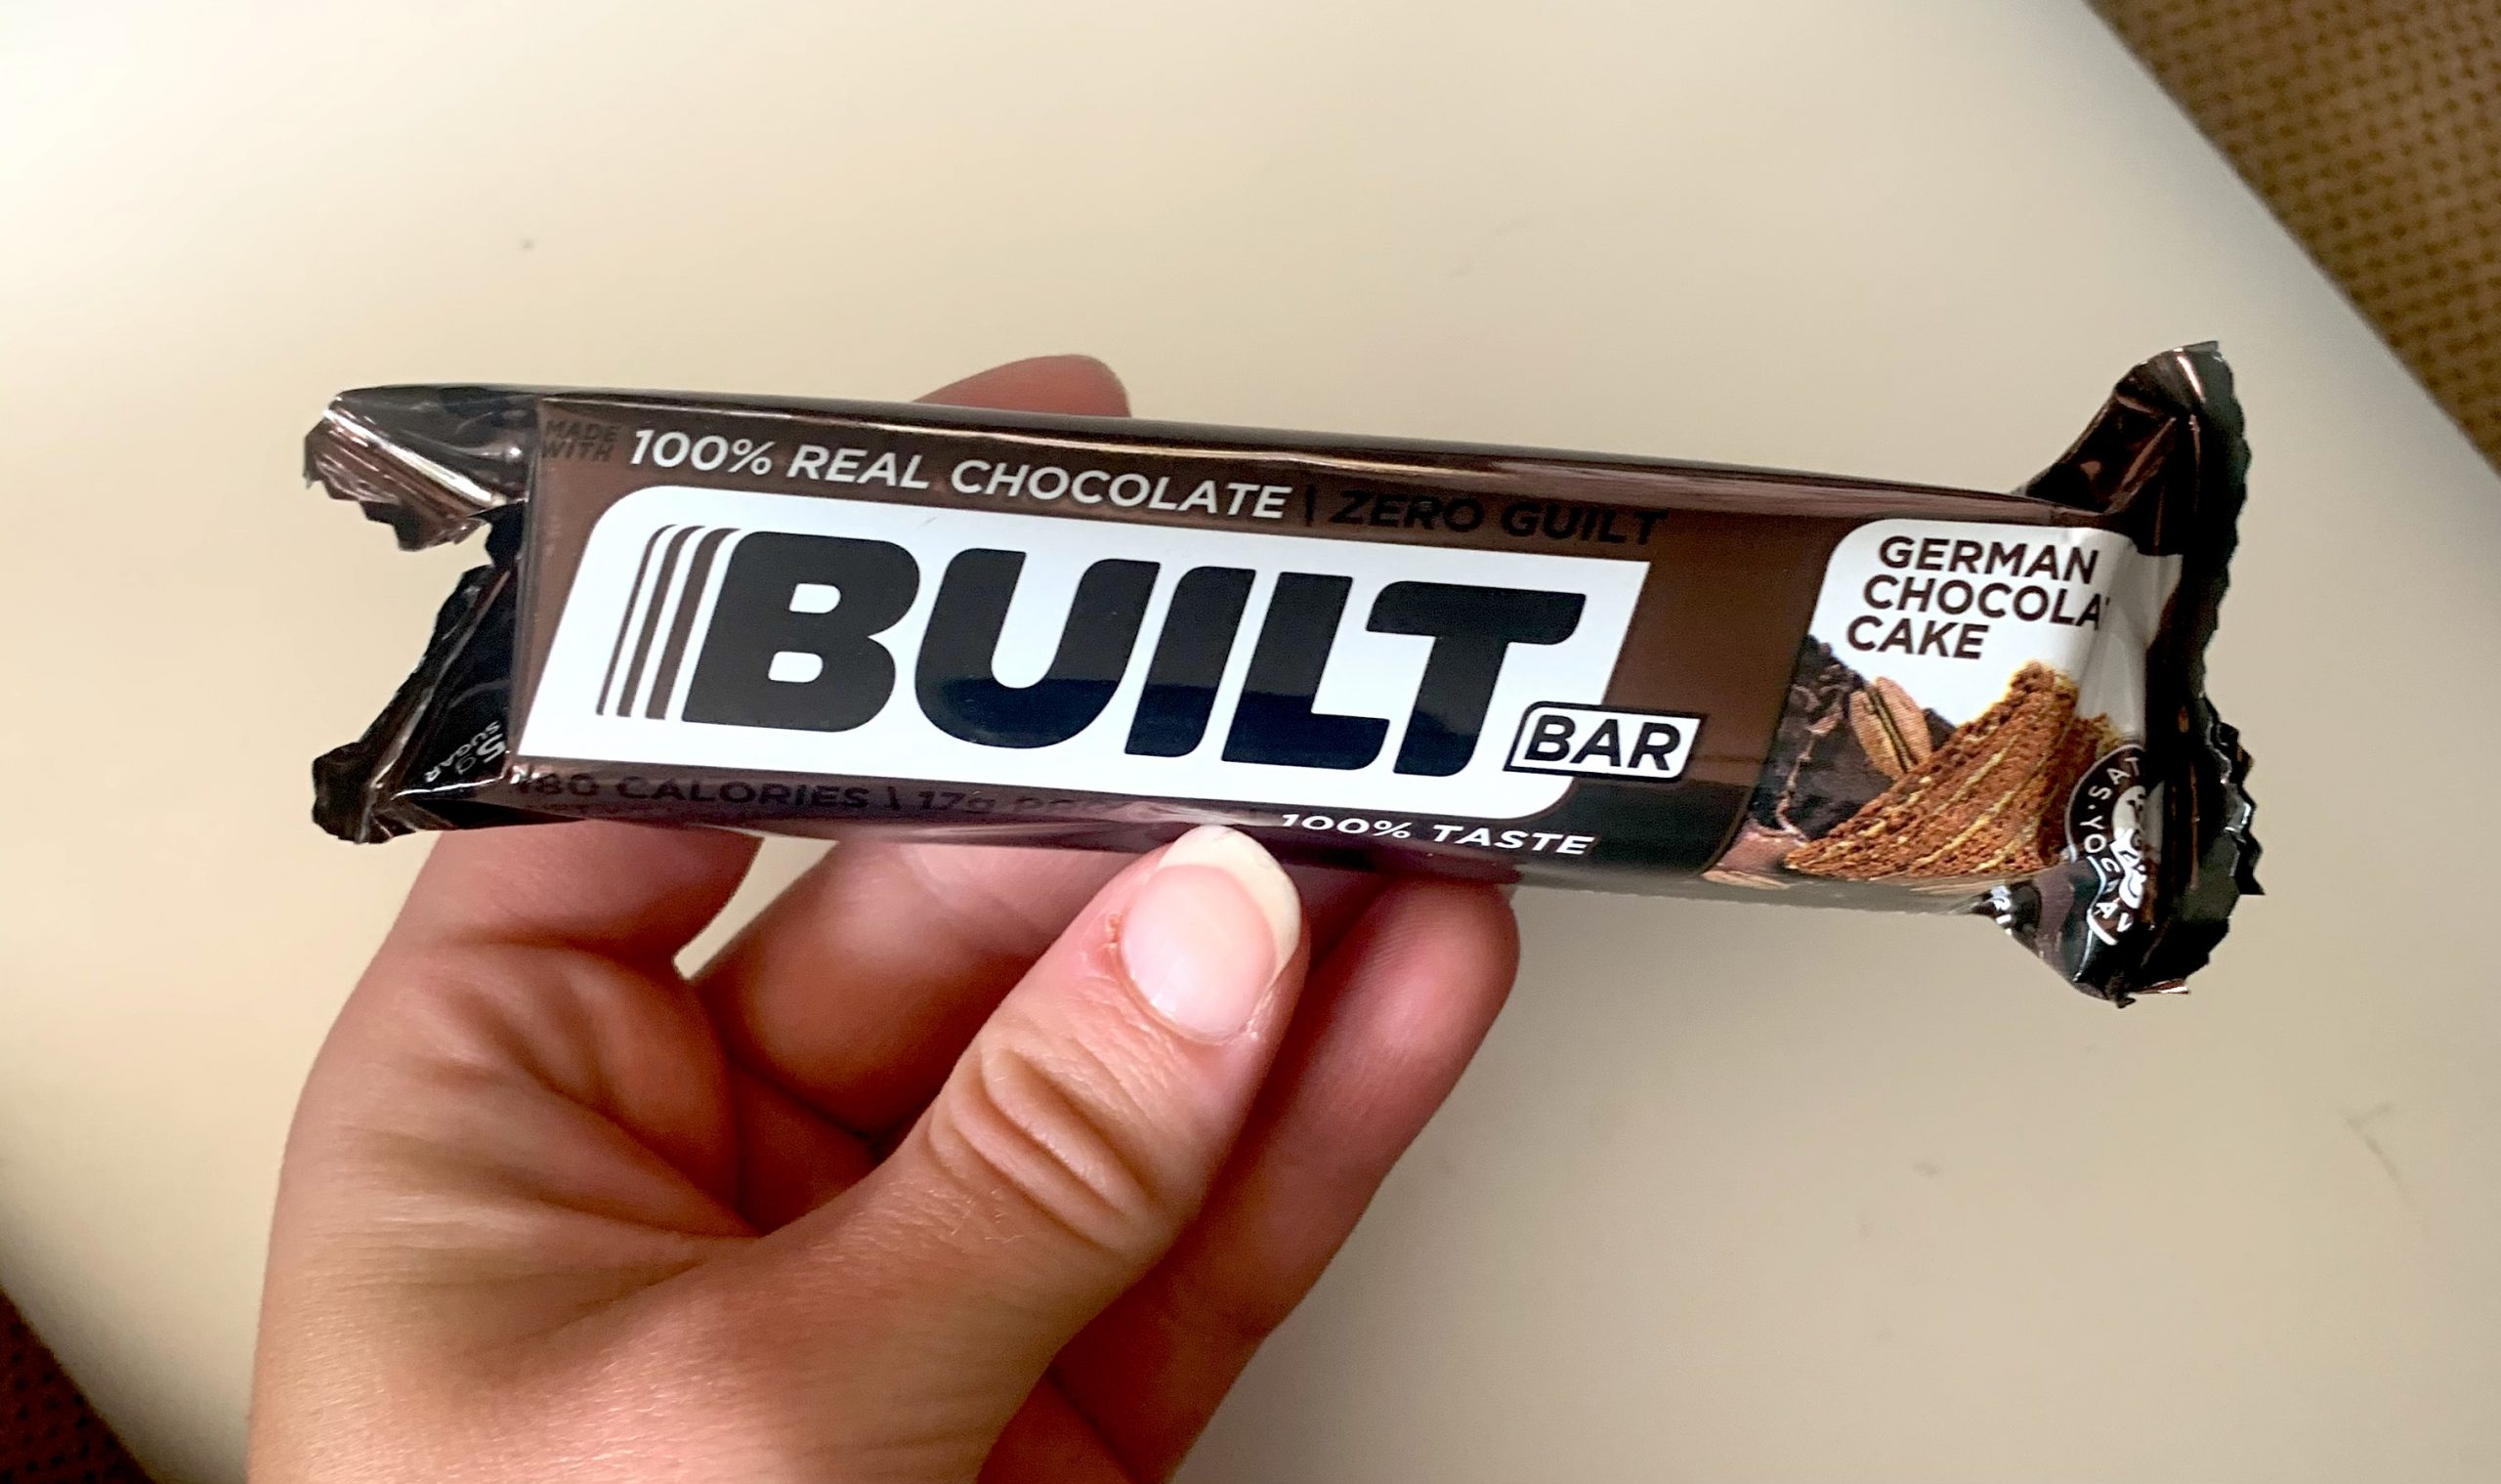 German Chocolate cake built bar review